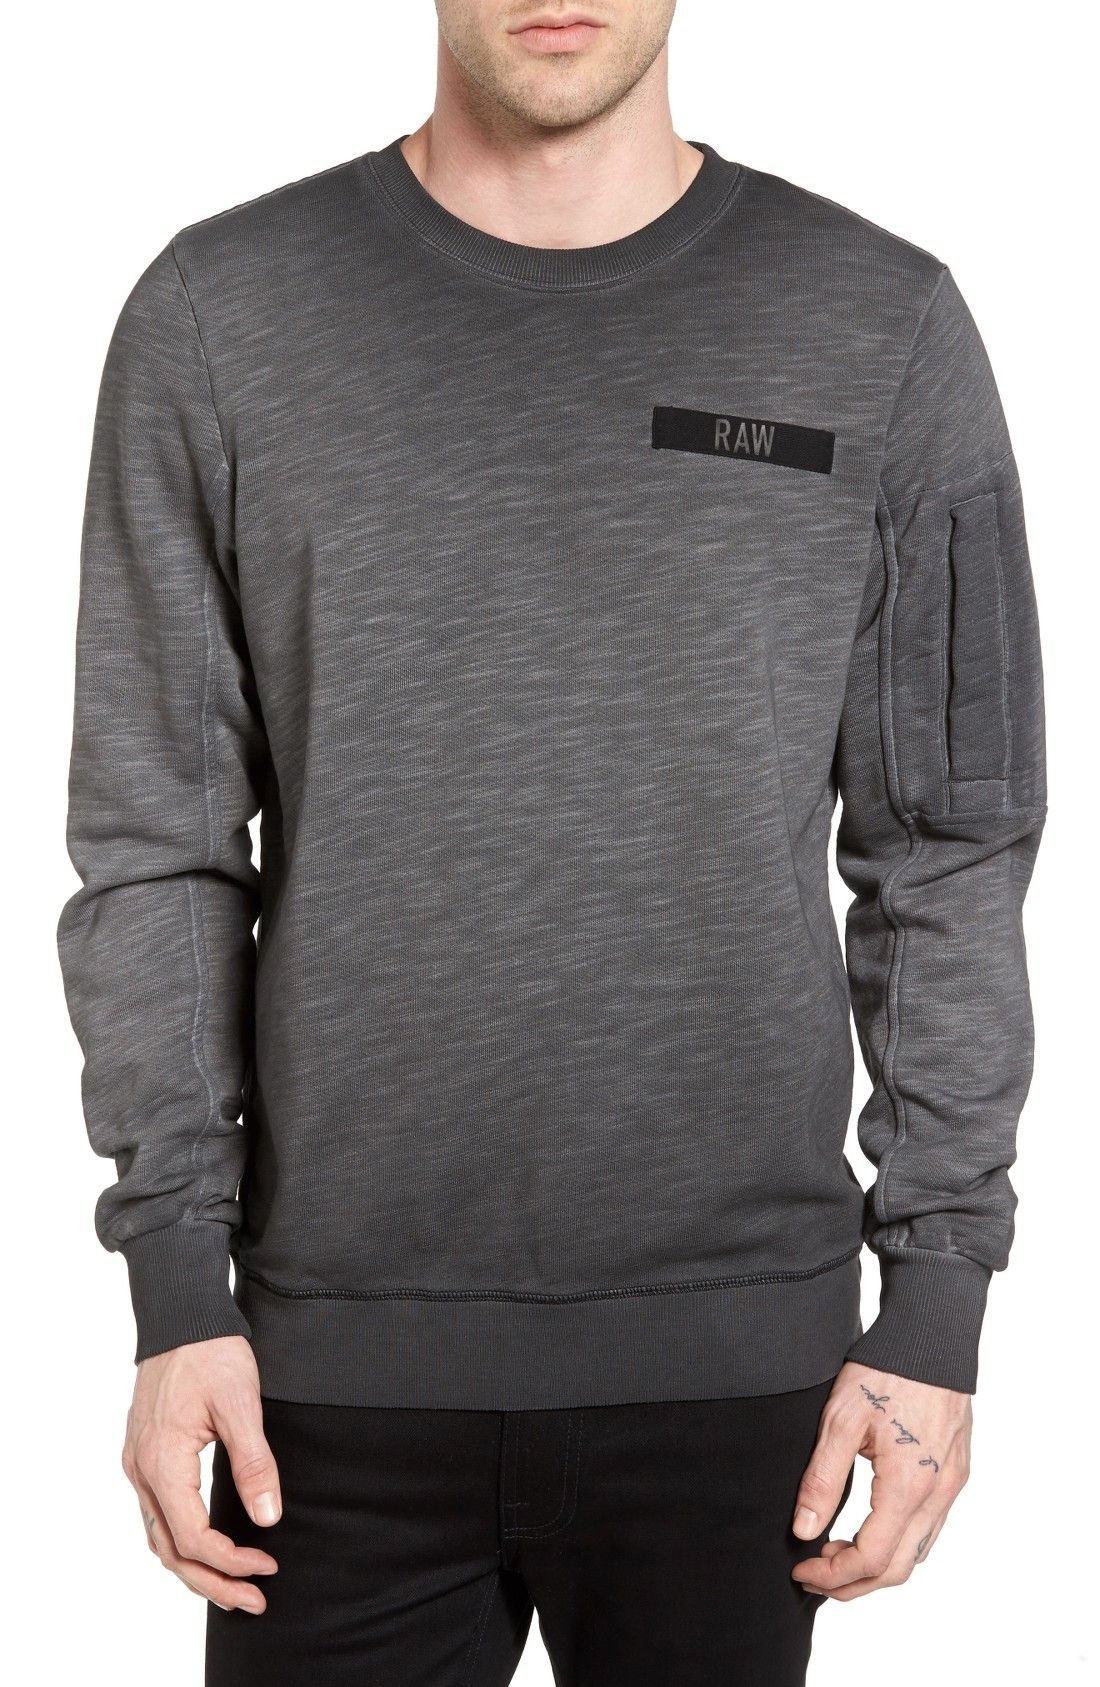 Gstar raw for men nordstrom mens outfits mens fasion